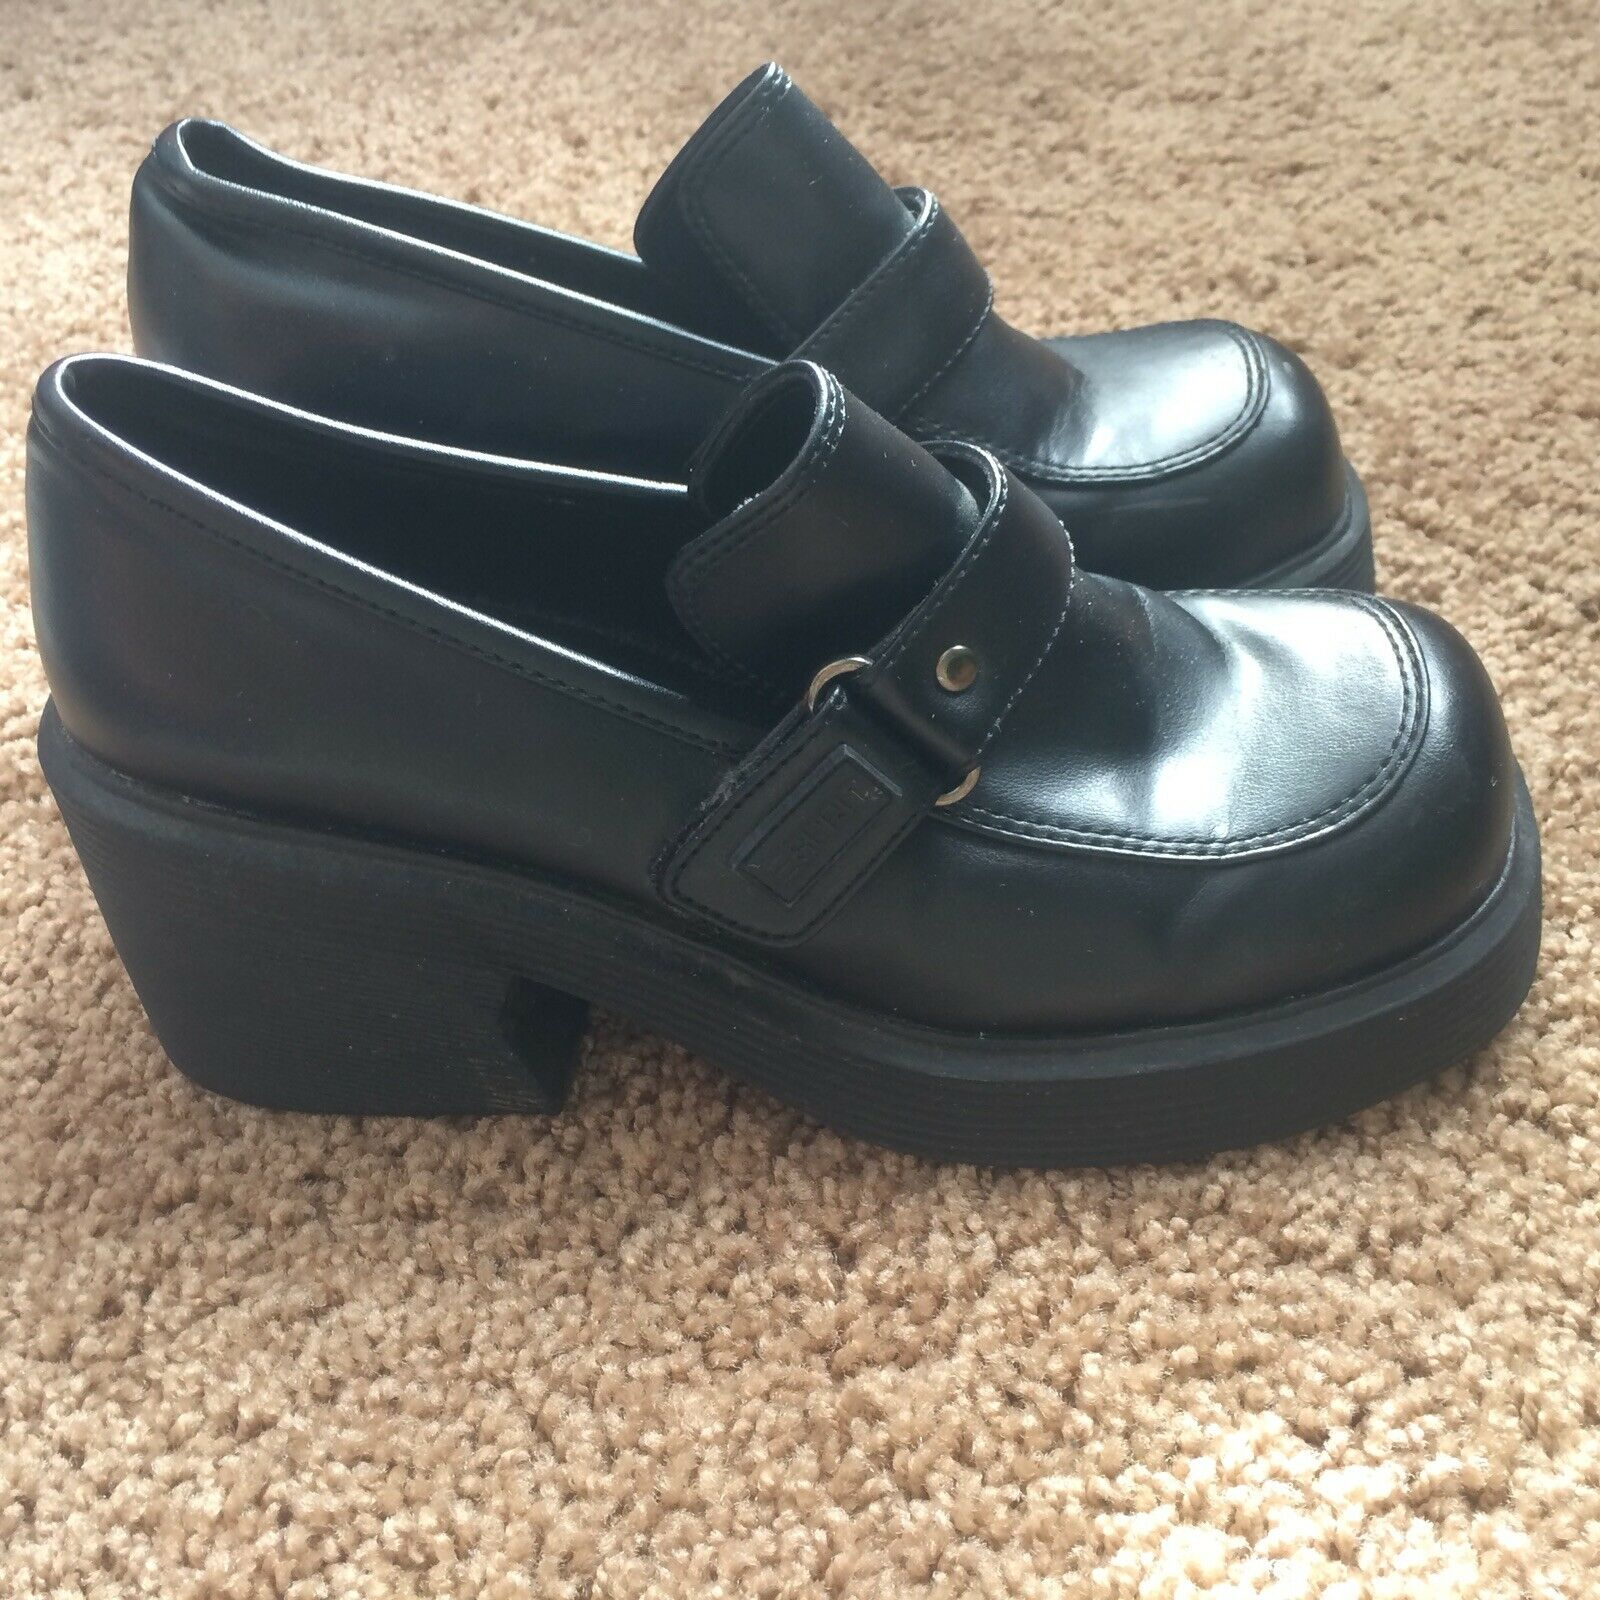 Black Womans Esprit Clogs Shoes Wedged Size 5.5 Preowned